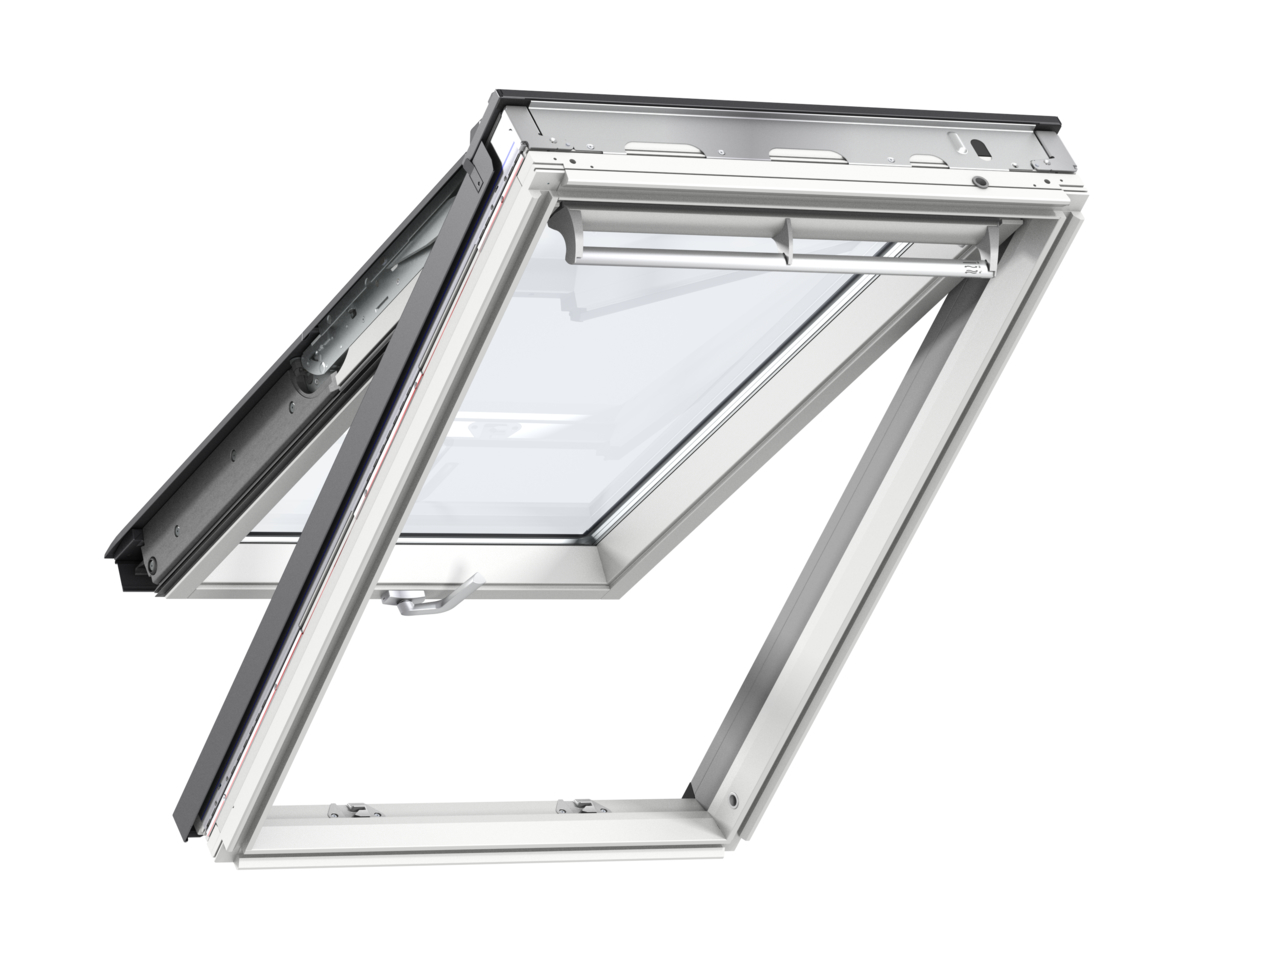 Velux GPL UK08 1340 x 980mm Top Hung 66Pane Roof Window - White Painted